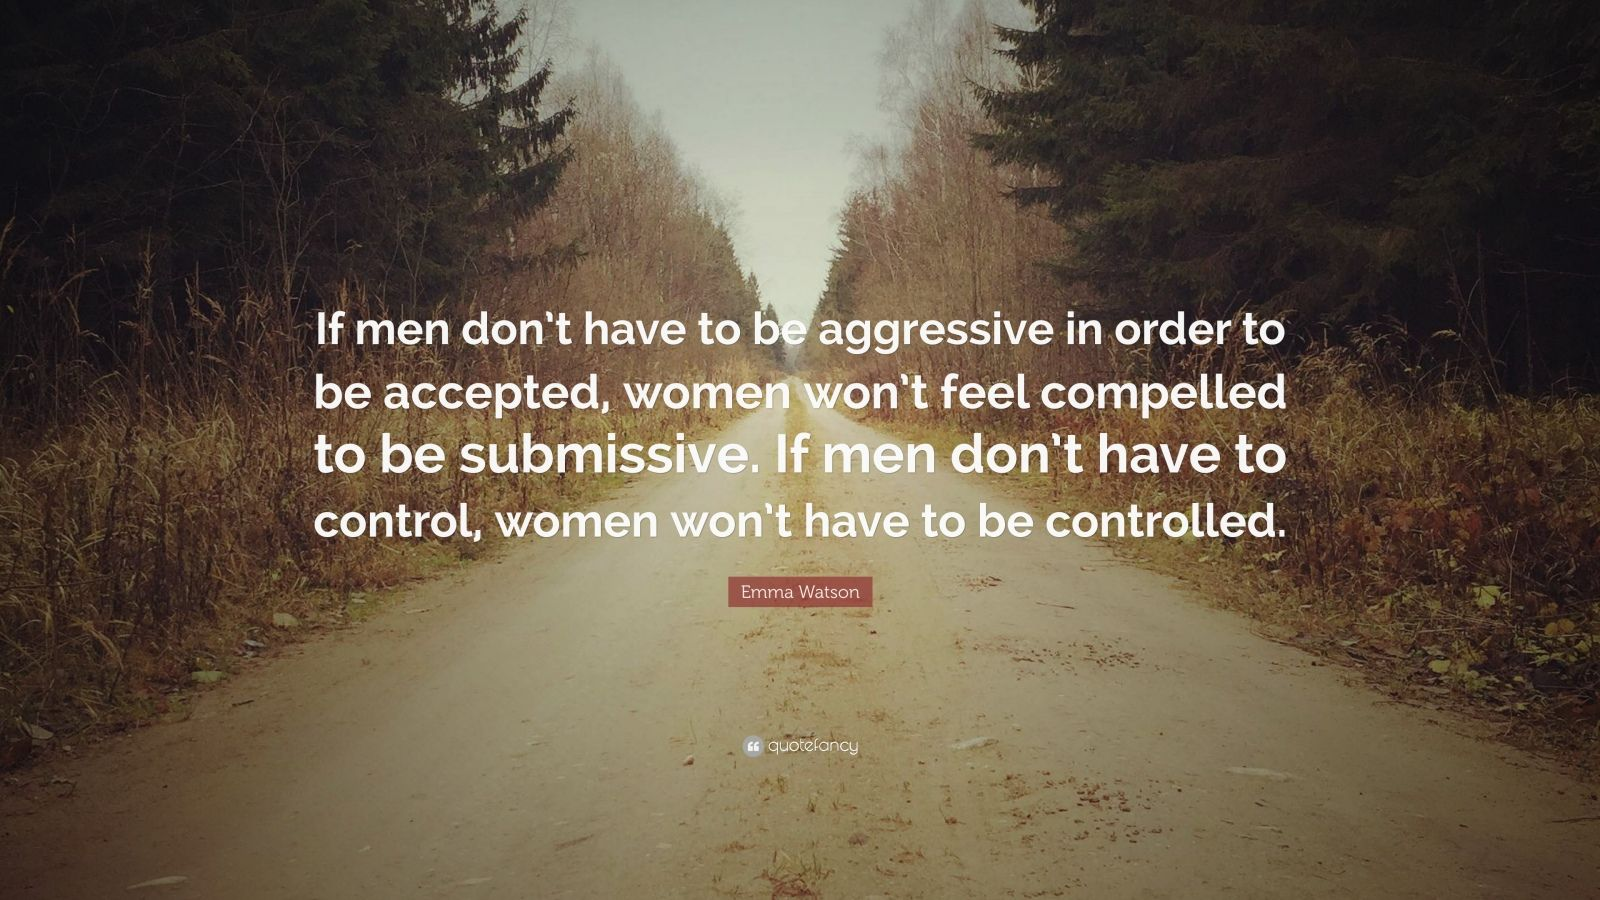 "Emma Watson Quote: ""If men don't have to be aggressive in order to be accepted, women won't feel compelled to be submissive. If men don't have to control, women won't have to be controlled."""